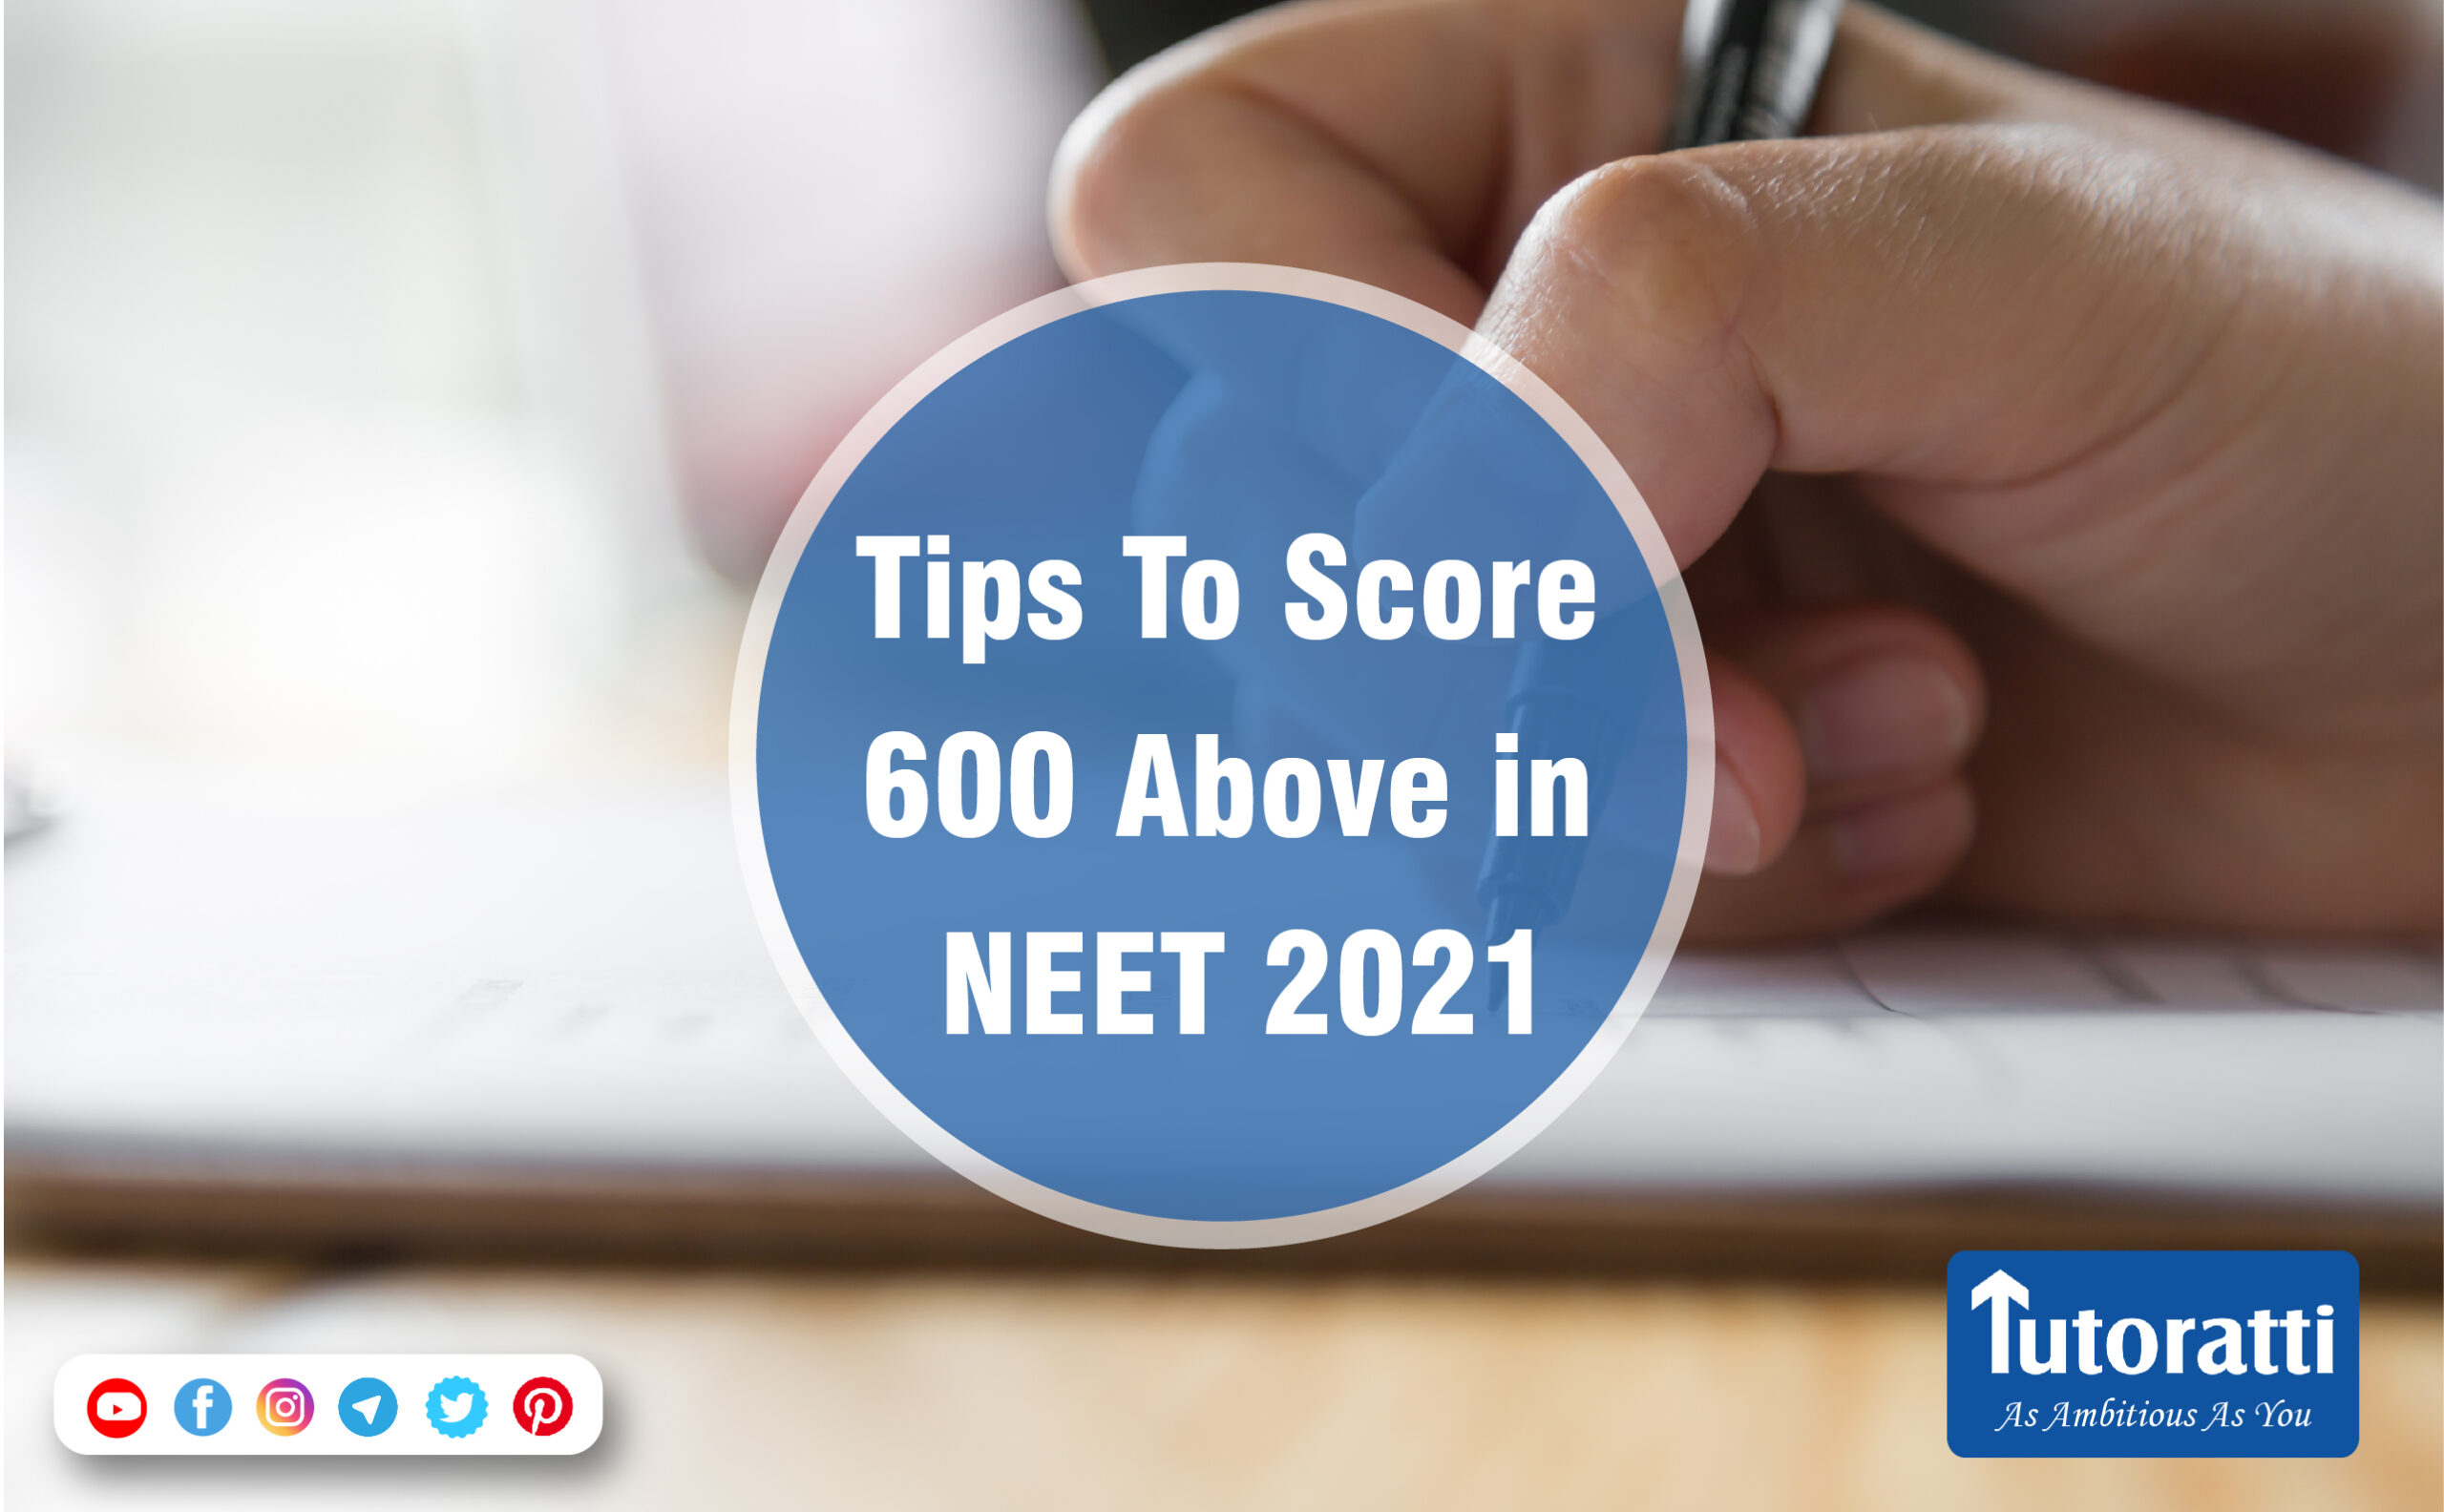 Tips To Score 600 Above in NEET 2021